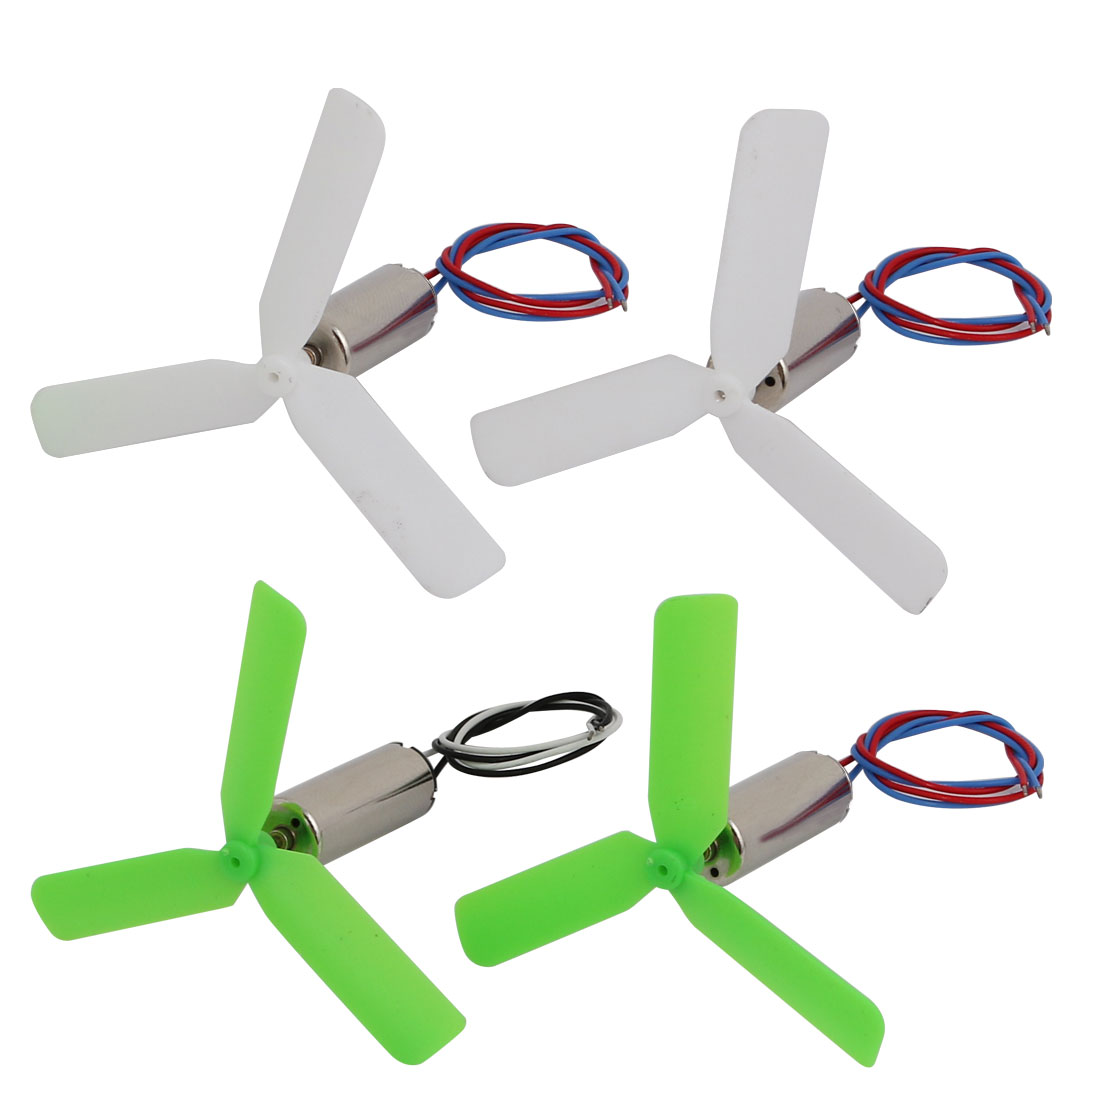 2pair DC3.7V 23900RPM 7mm x 20mm Motor w Green White 3-Vanes CW CCW Propeller